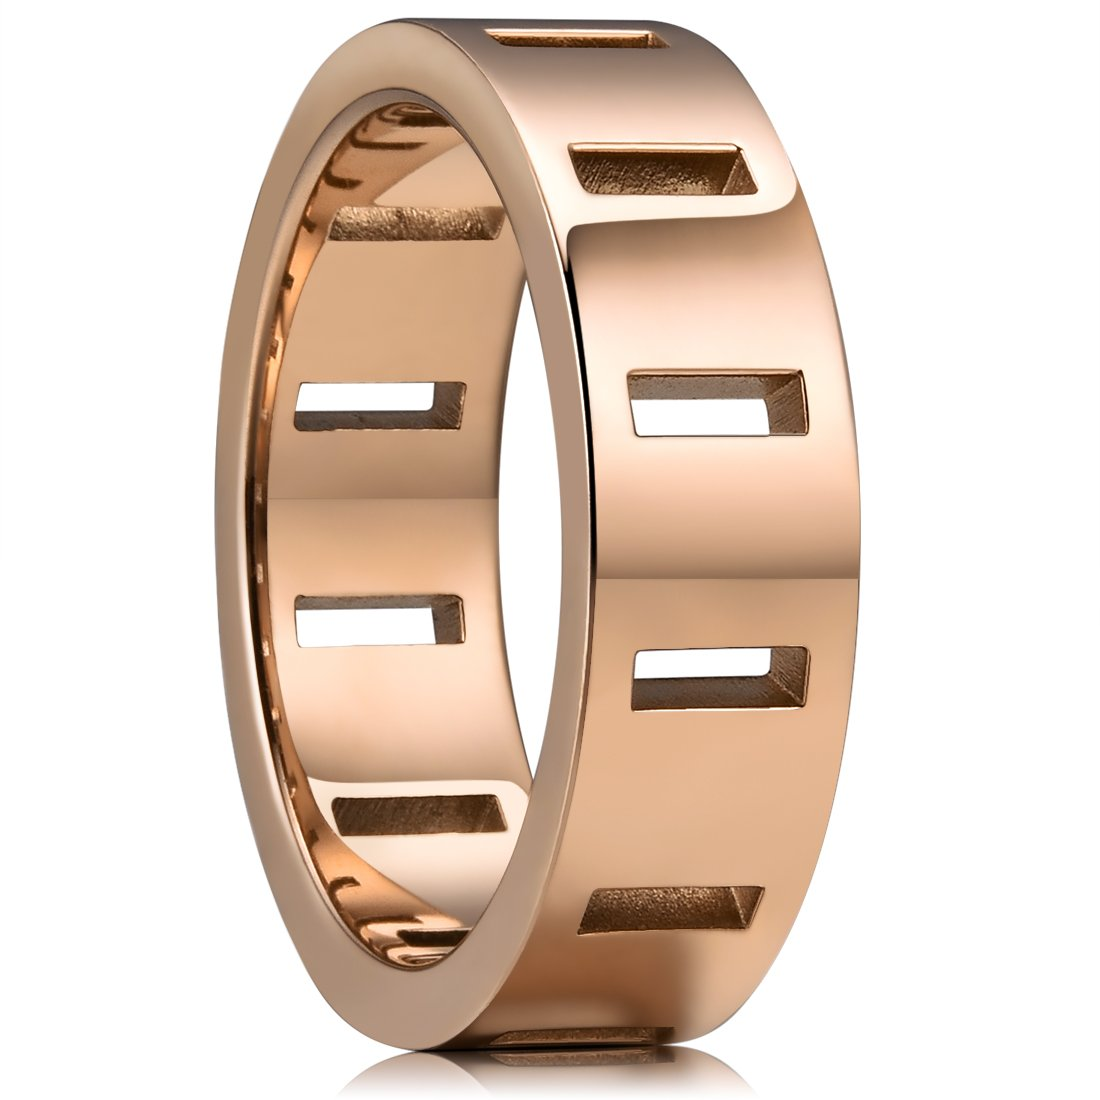 King Will 6mm 316 Stainless Steel Wedding Band Ring Rose Gold with 12 Rectangle Hollow&Full High Polished(9)